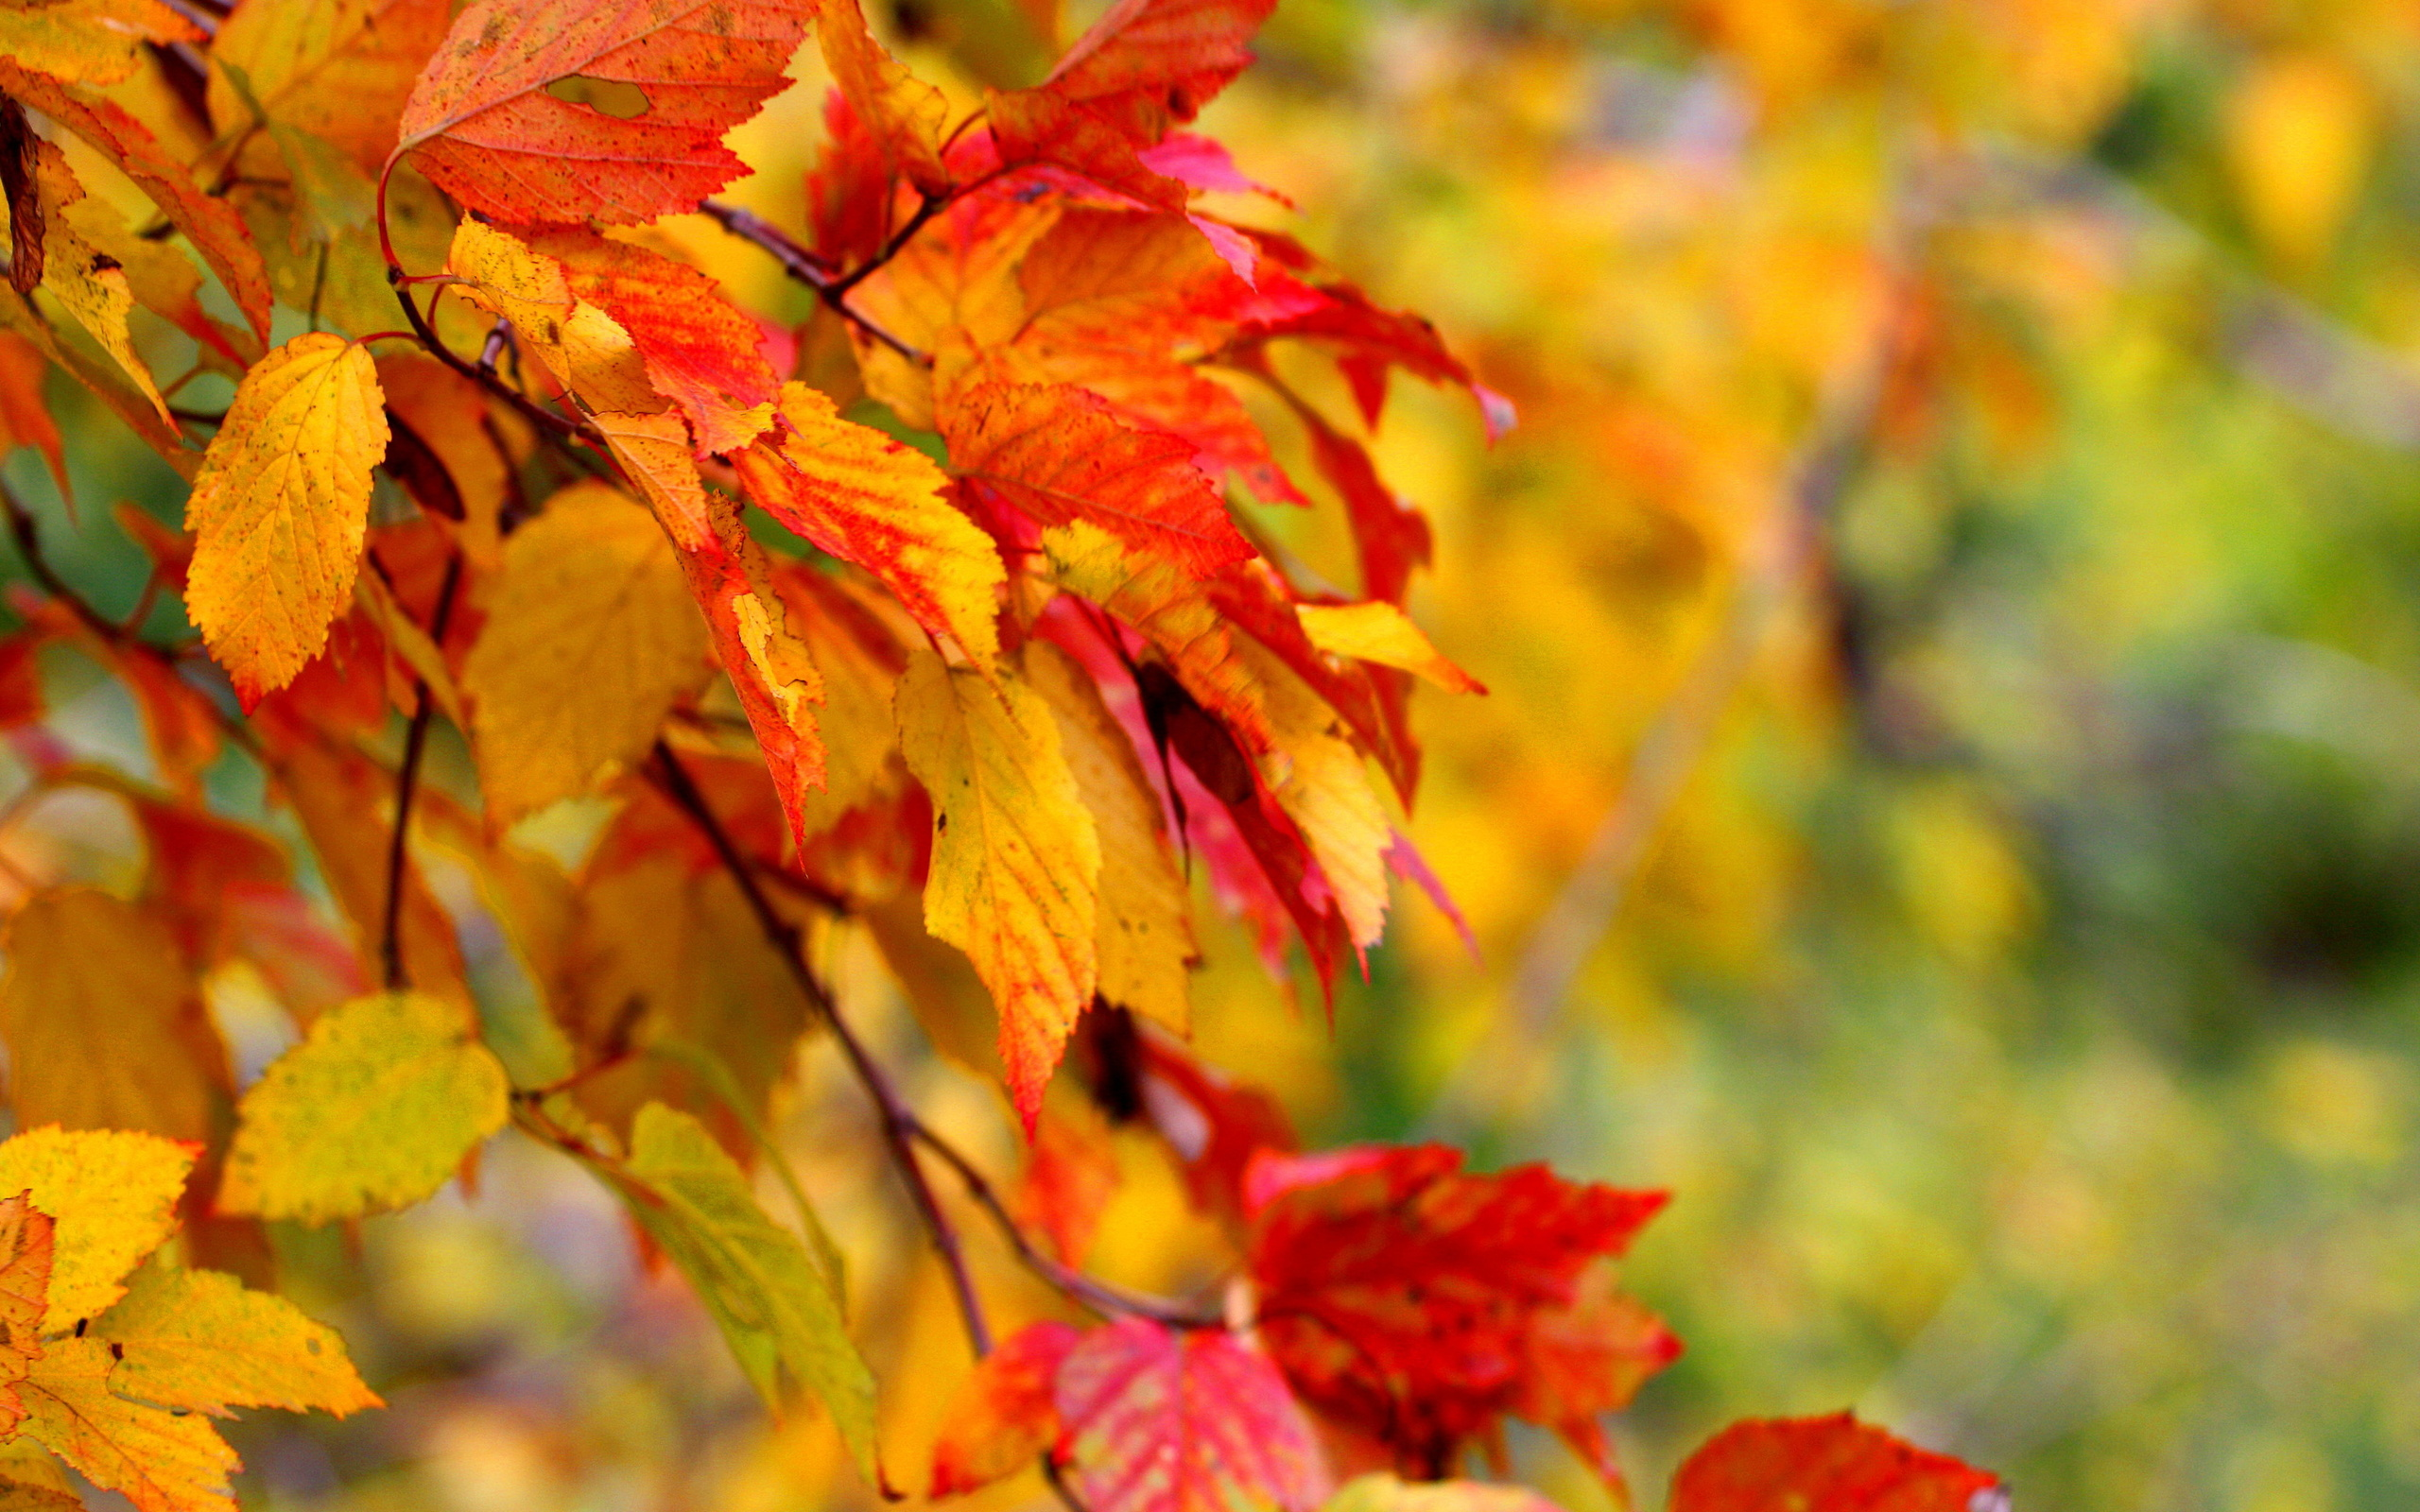 Autumn Wallpaper branch leaf close-up wallpaper background